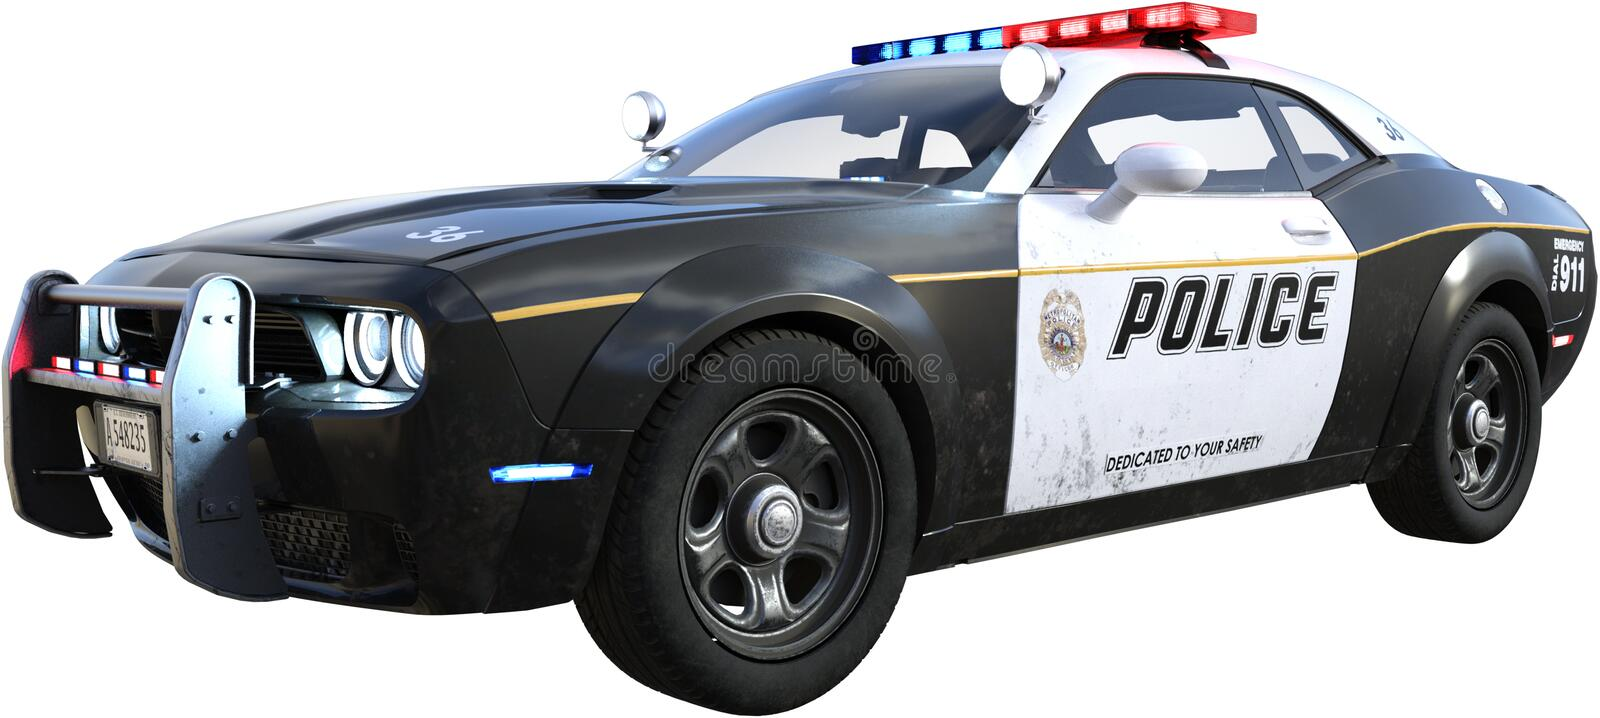 Police Squad Cop Car, Isolated, Law Enforcement. Illustration of a police cop squad car, The law enforcement auto is isolated on white, PNG file available royalty free illustration